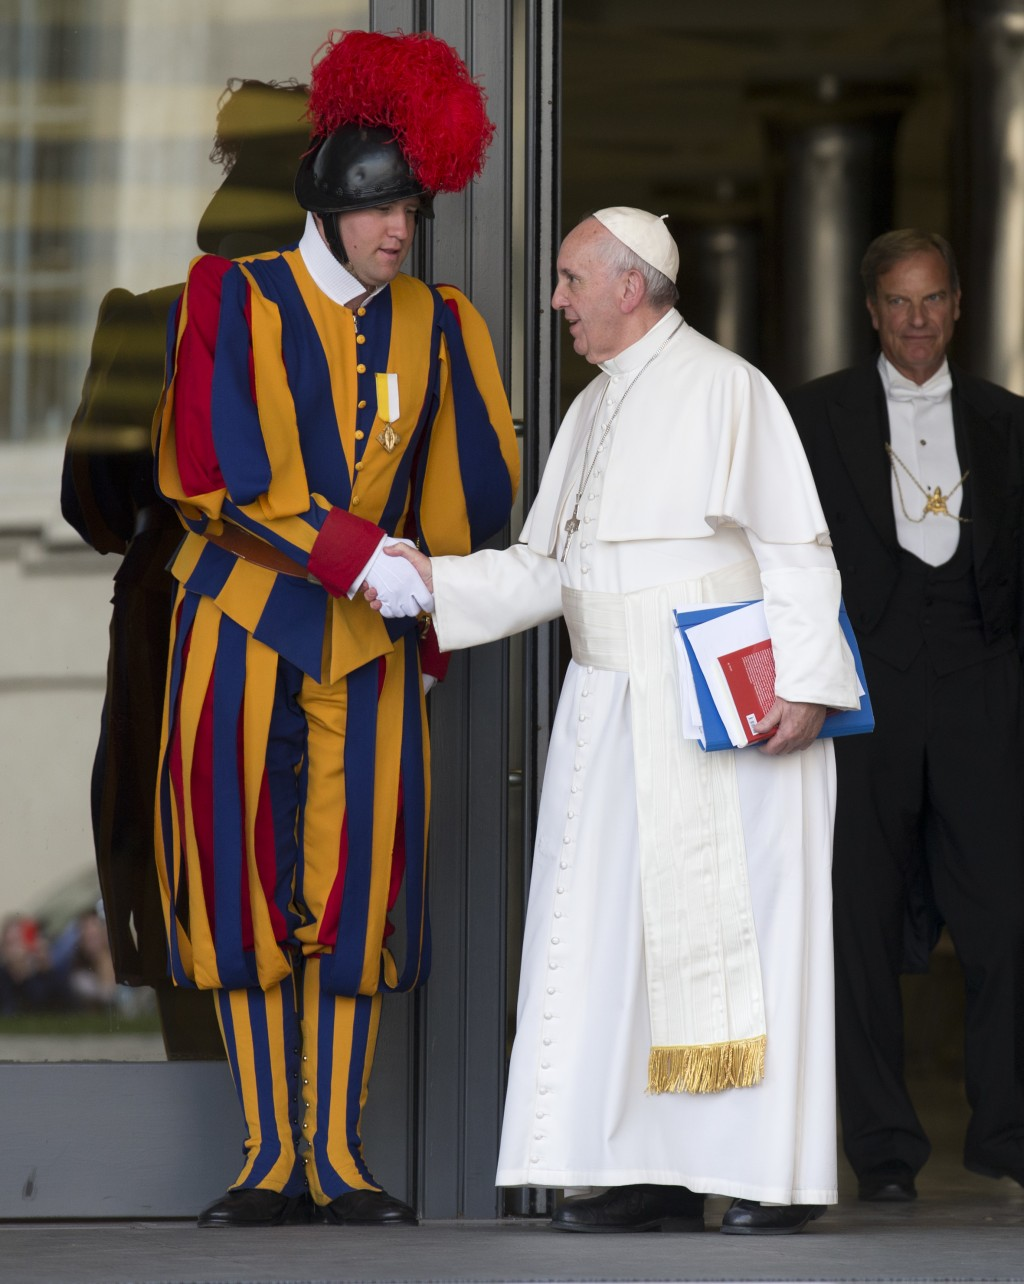 FILE - In this Oct. 16, 2015 file photo, Pope Francis shakes hands with a Vatican Swiss guard as he leaves after a morning session of the Synod of bis